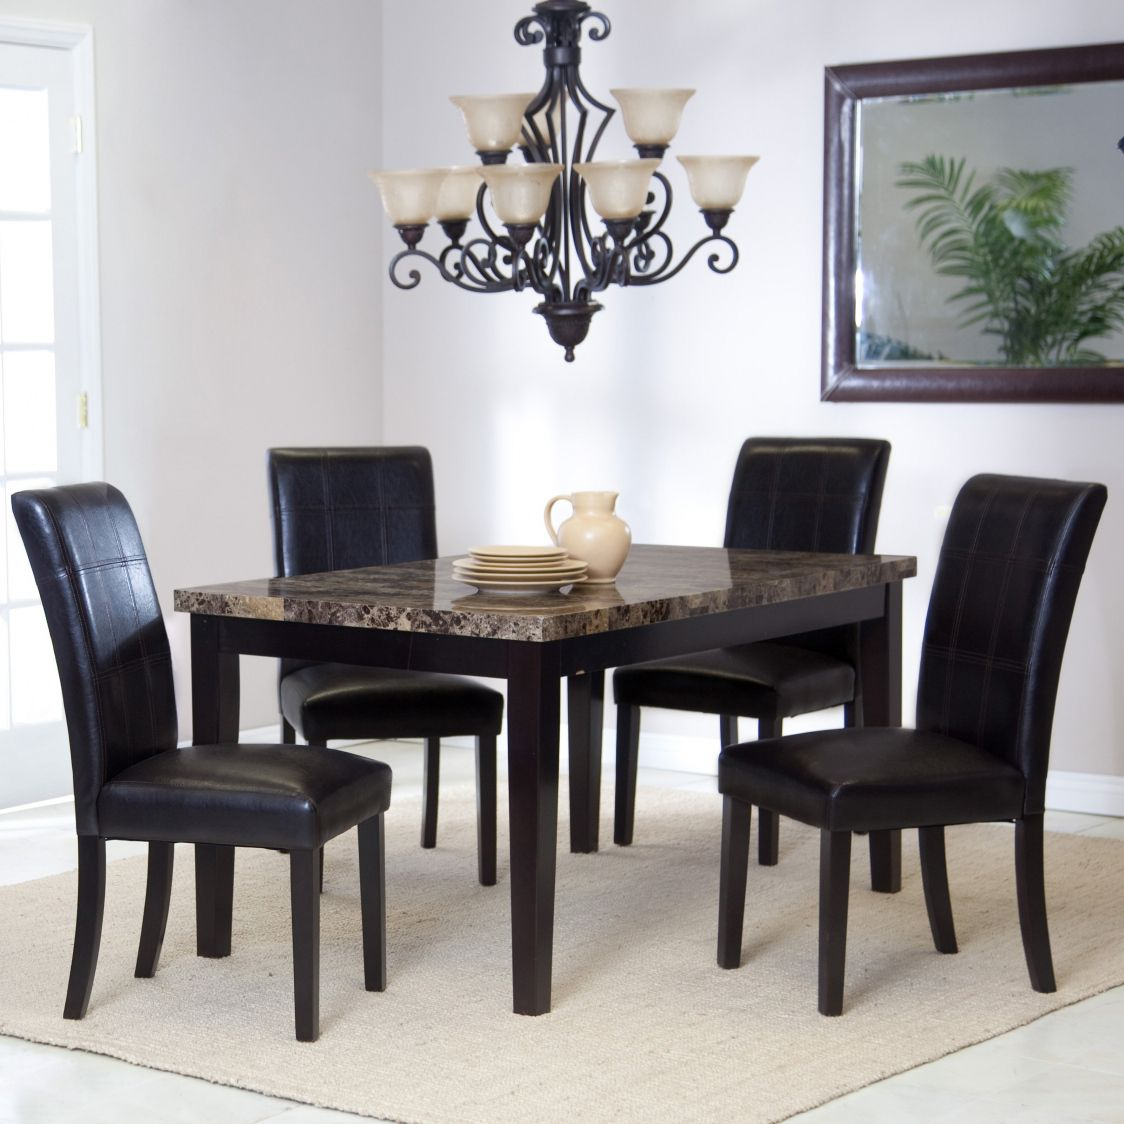 Room Dining 5 Piece Sets